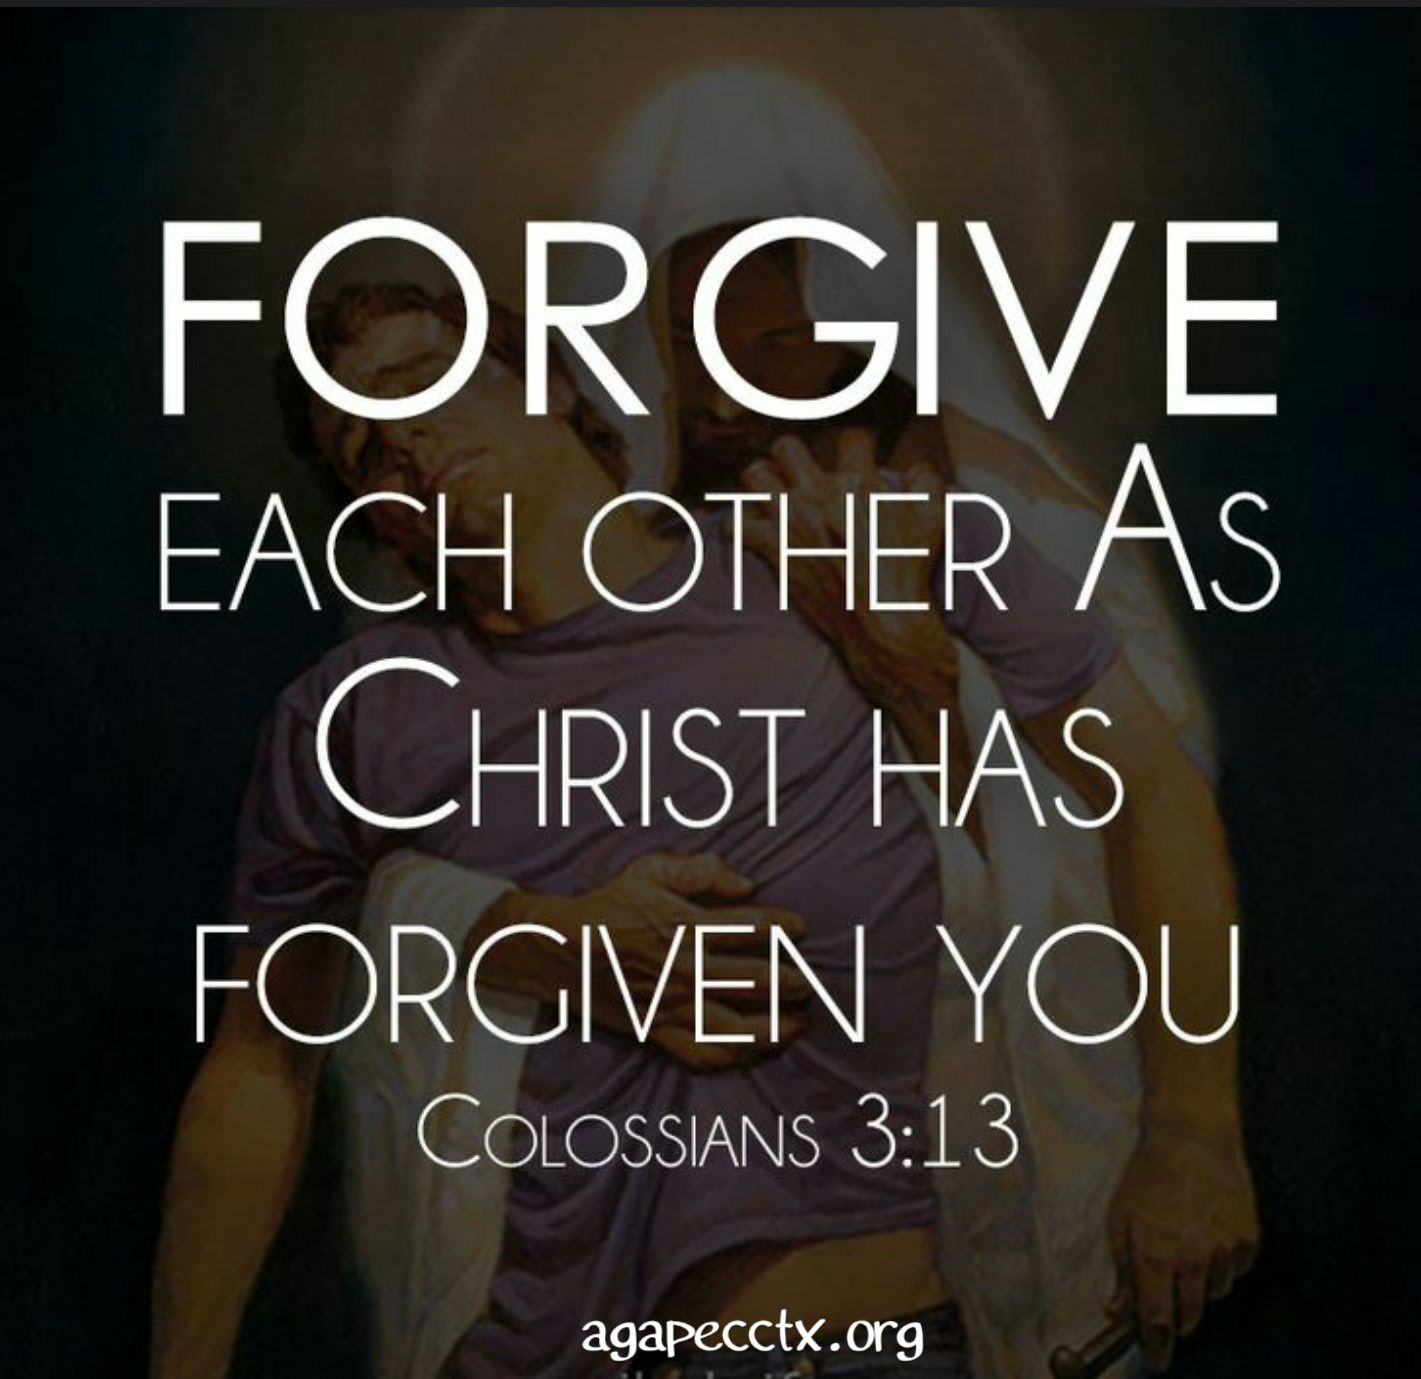 Bible Quotes On Love And Marriage Forgiveness  Christian Quotes  Pinterest  Forgiveness Bible